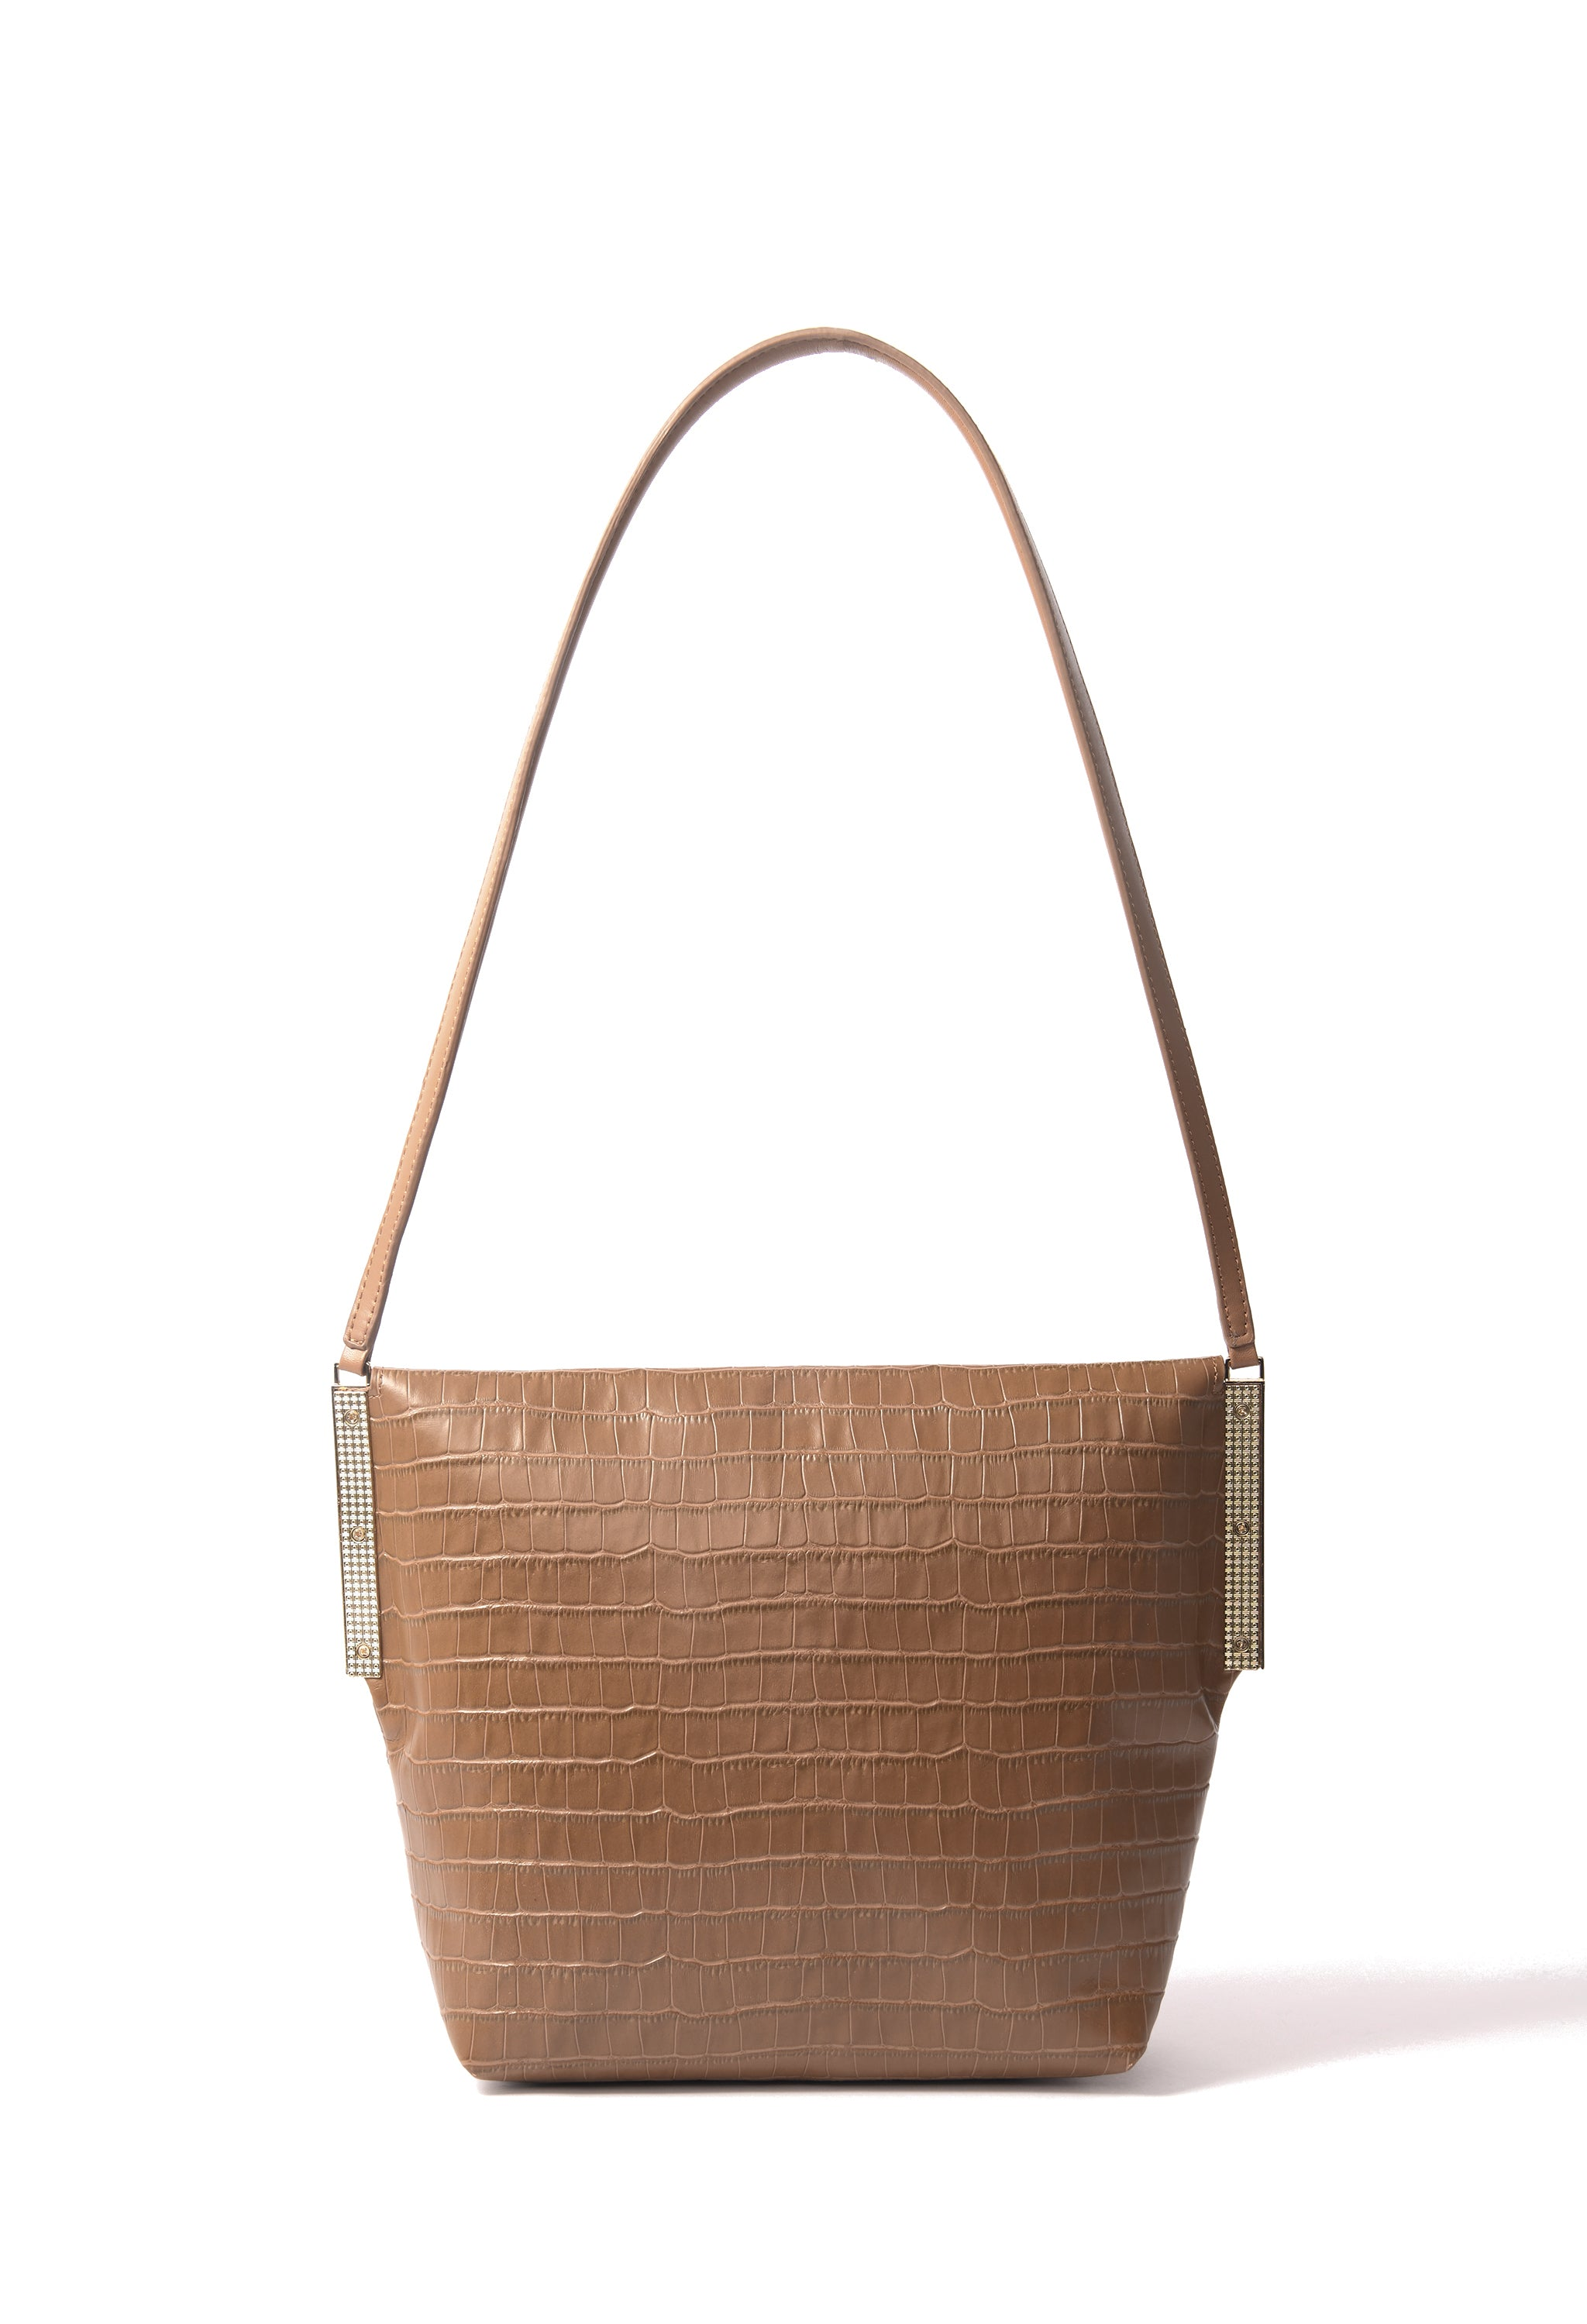 Giselle Bag in croco embossed leather, Brown